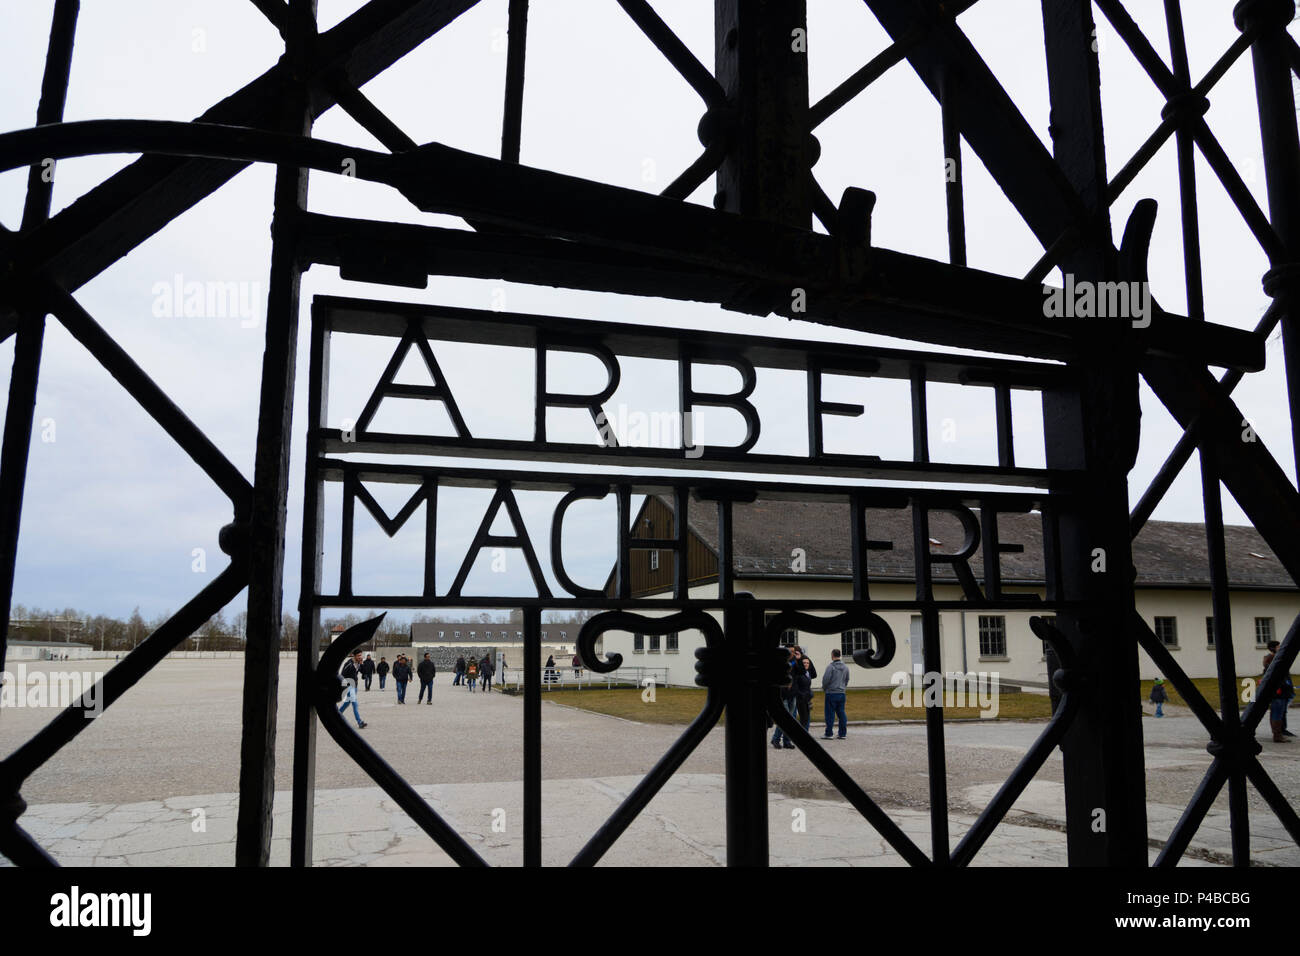 Dachau, concentration camp, main camp gate, sign slogan 'Arbeit macht frei' ('Work will make you free.'), Upper Bavaria, Bavaria, Germany - Stock Image